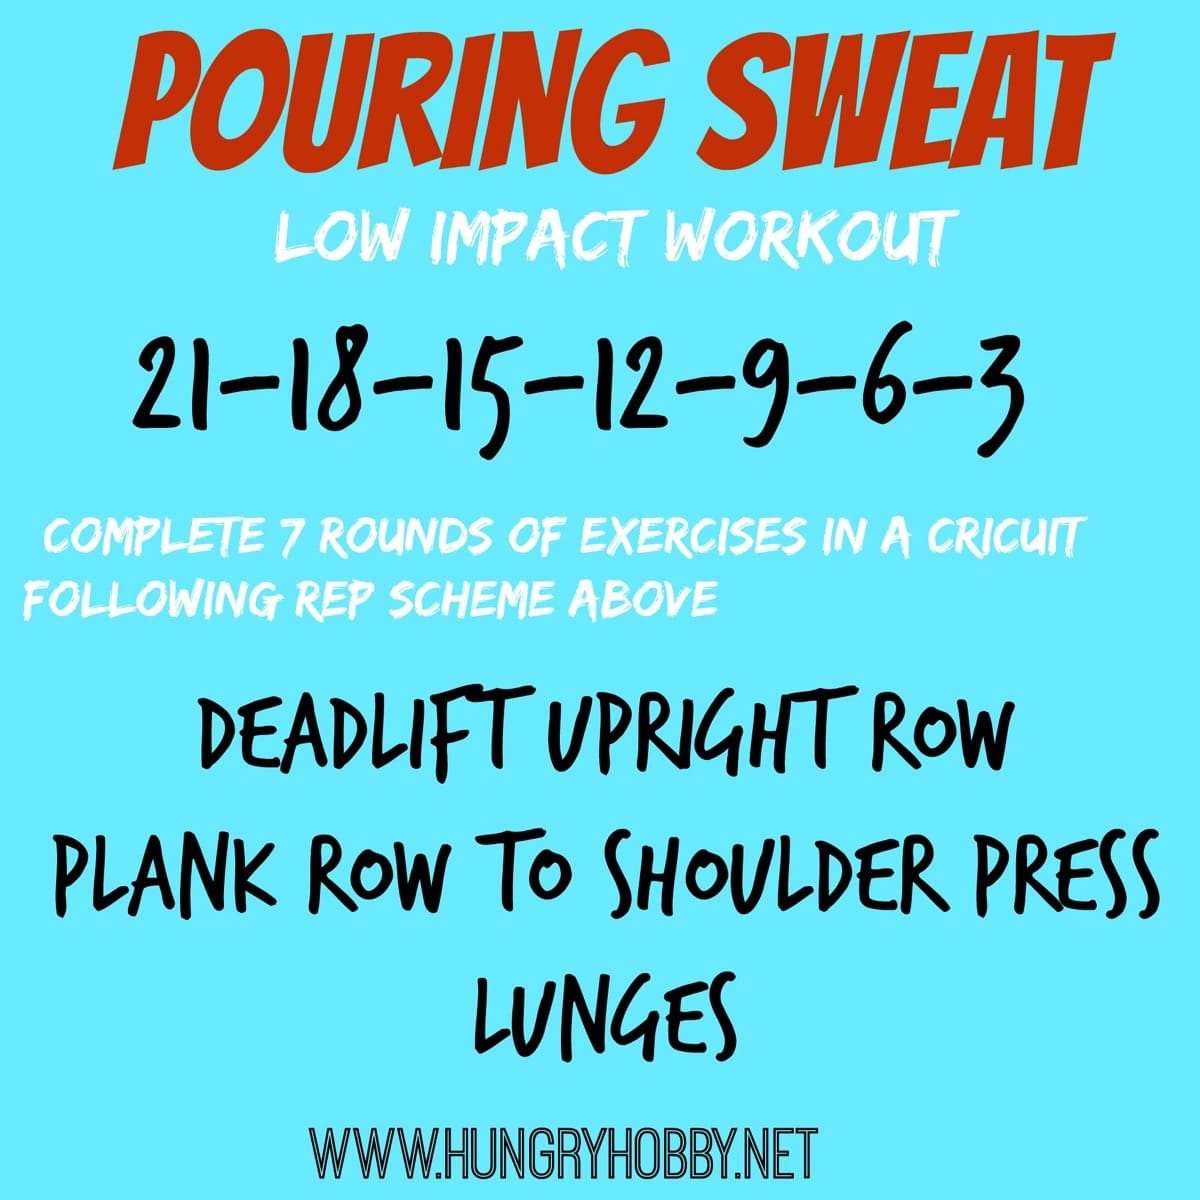 Pouring sweat workout